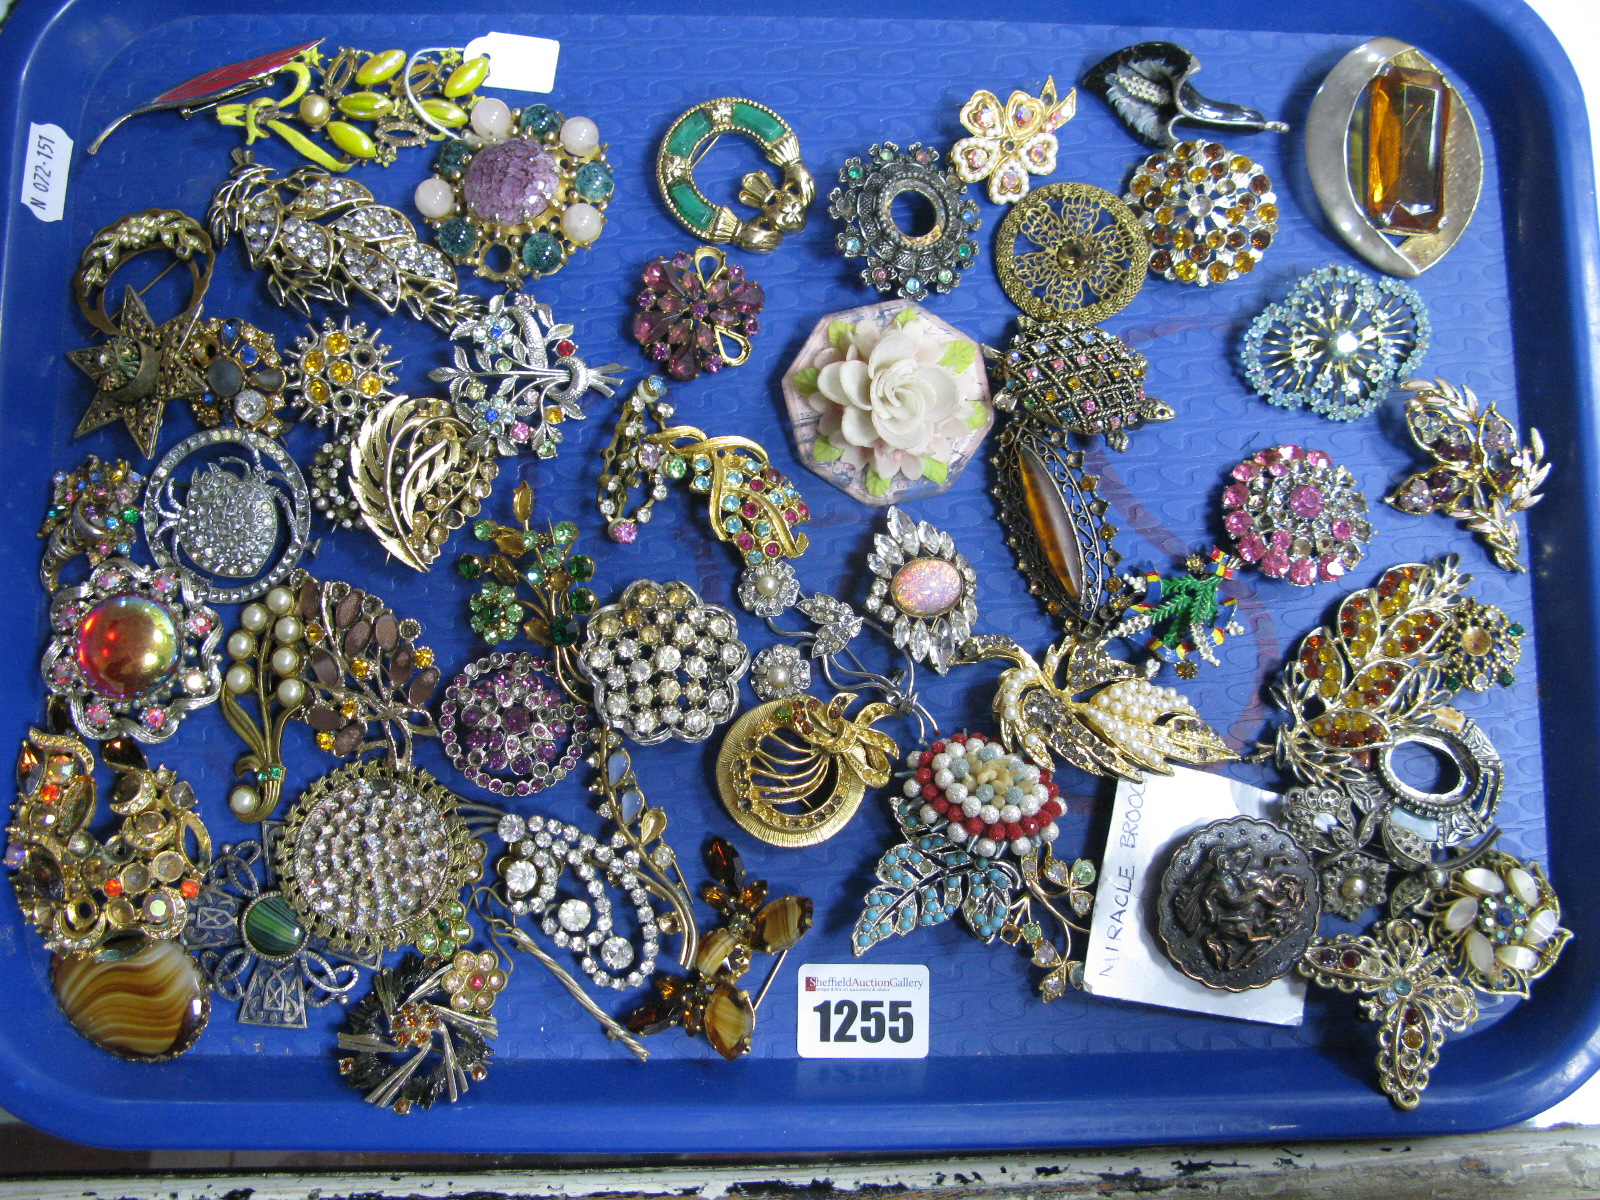 Lot 1255 - A Mixed Lot of Assorted Costume Brooches, including Miracle, Claddagh and other floral brooches,